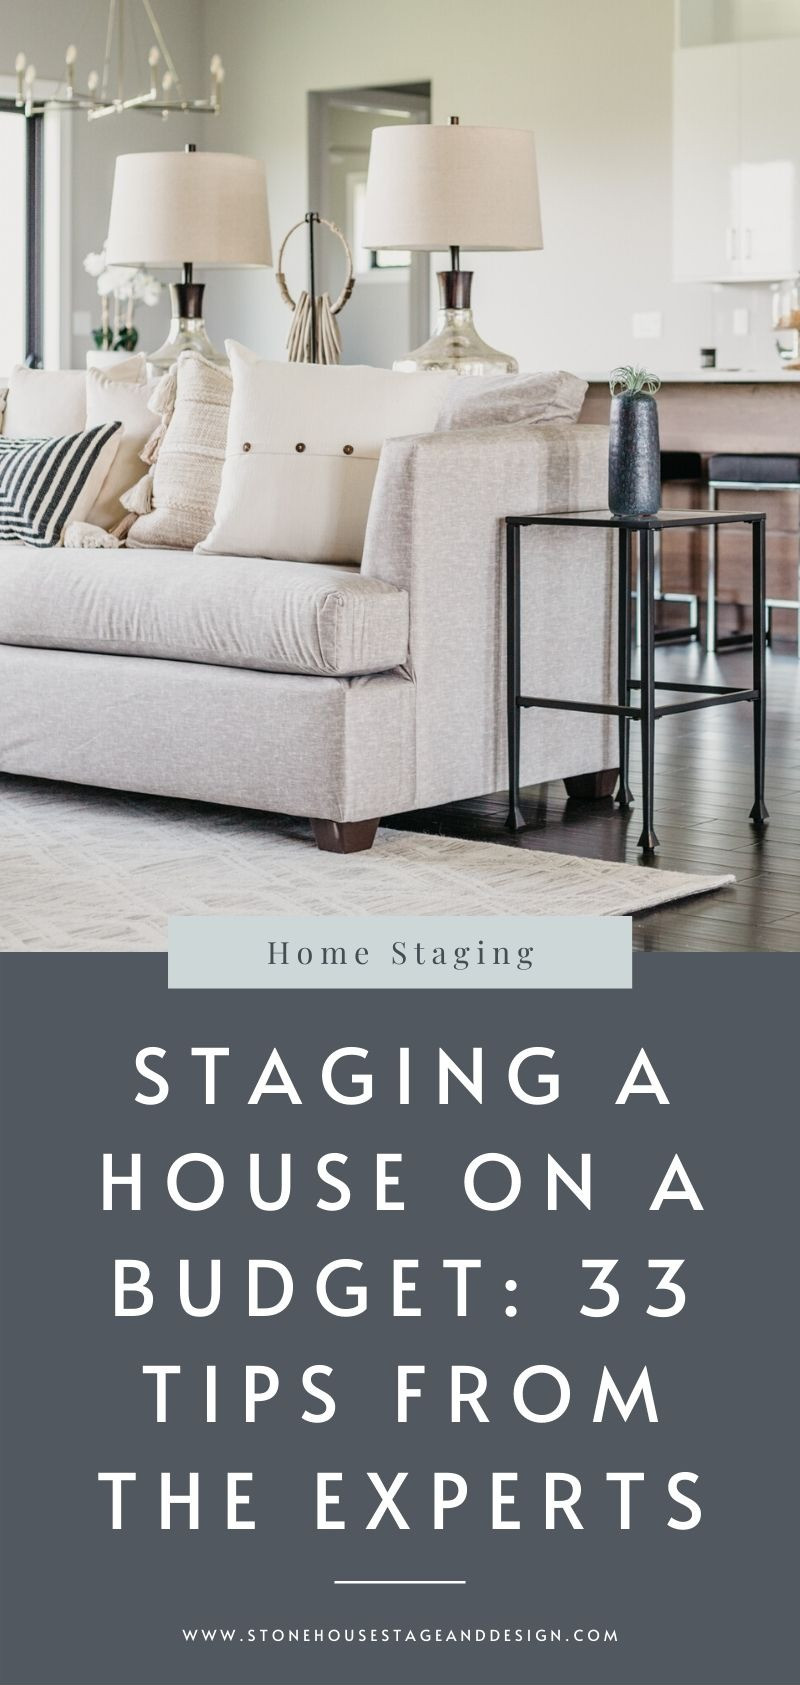 Staging a House on a Budget: 33 Tips from the Experts